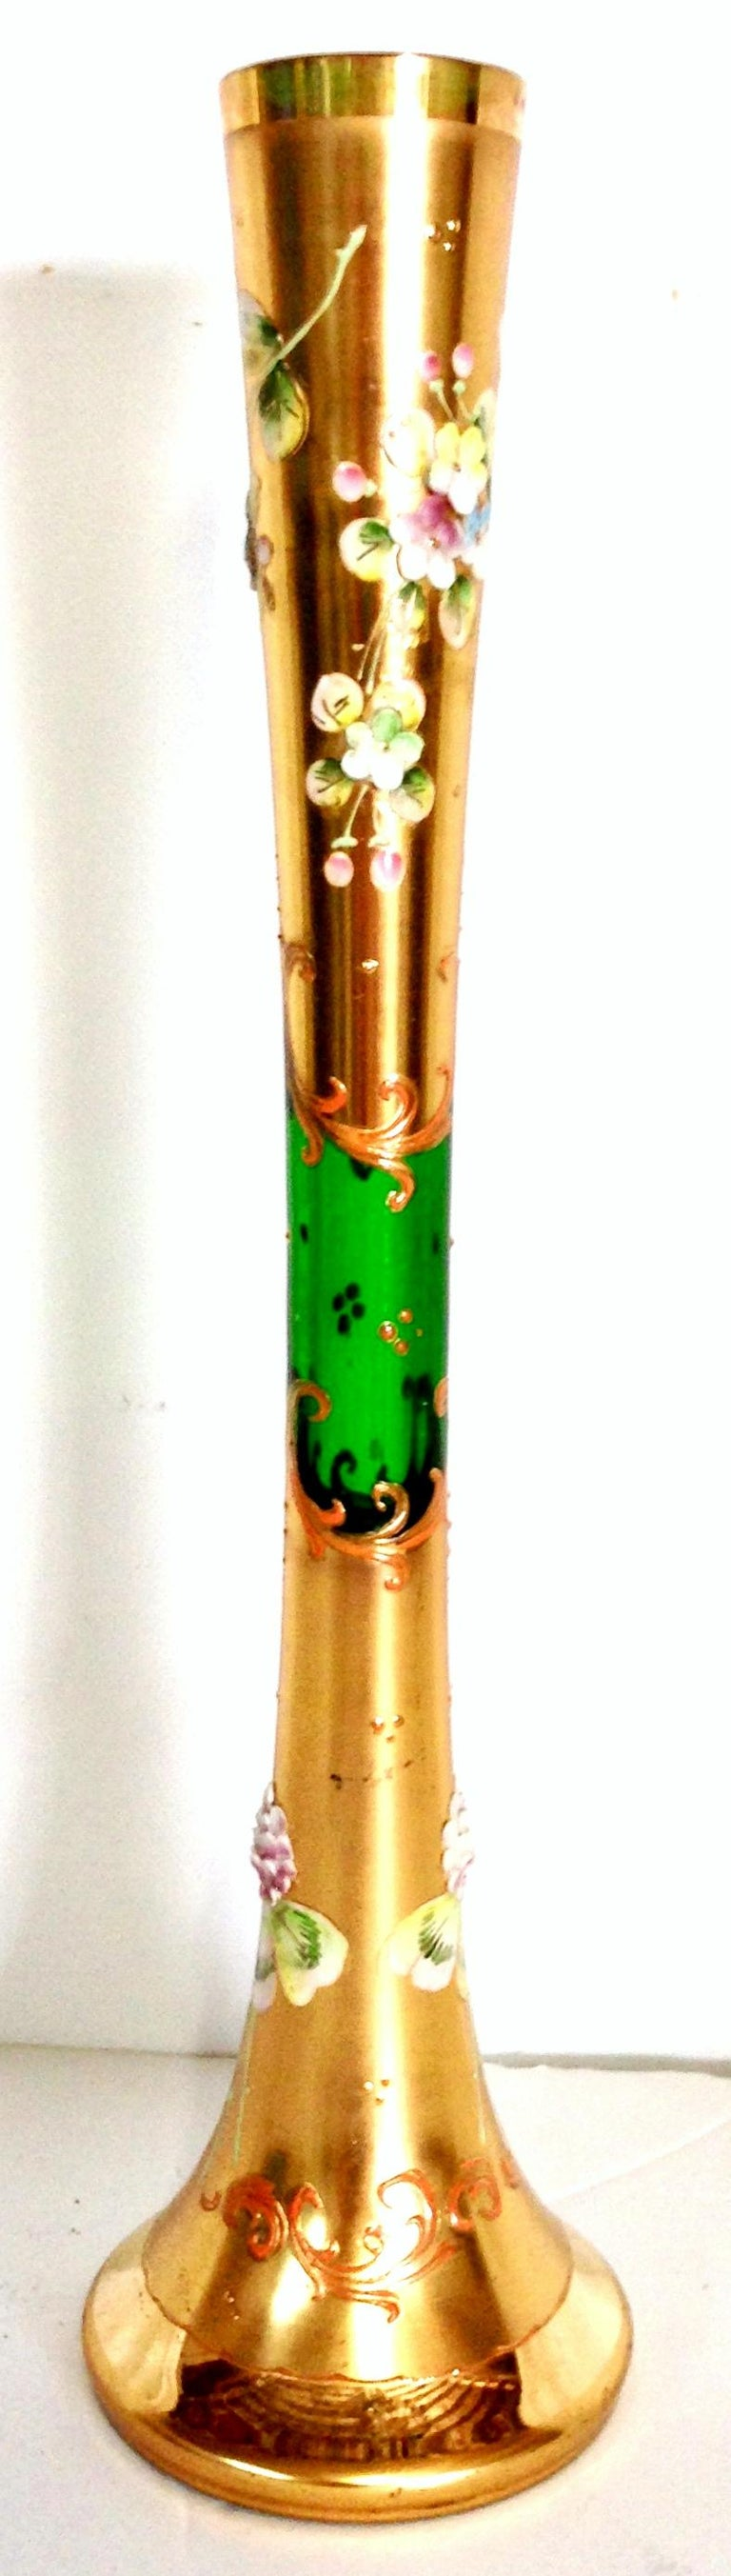 Mid-20th Century Art Nouveau Bohemia Art Glass & 22K Gold Vase. Features a fluted shape with emerald green ground and heavily applied 22K Gilt Gold, hand painted floral motif